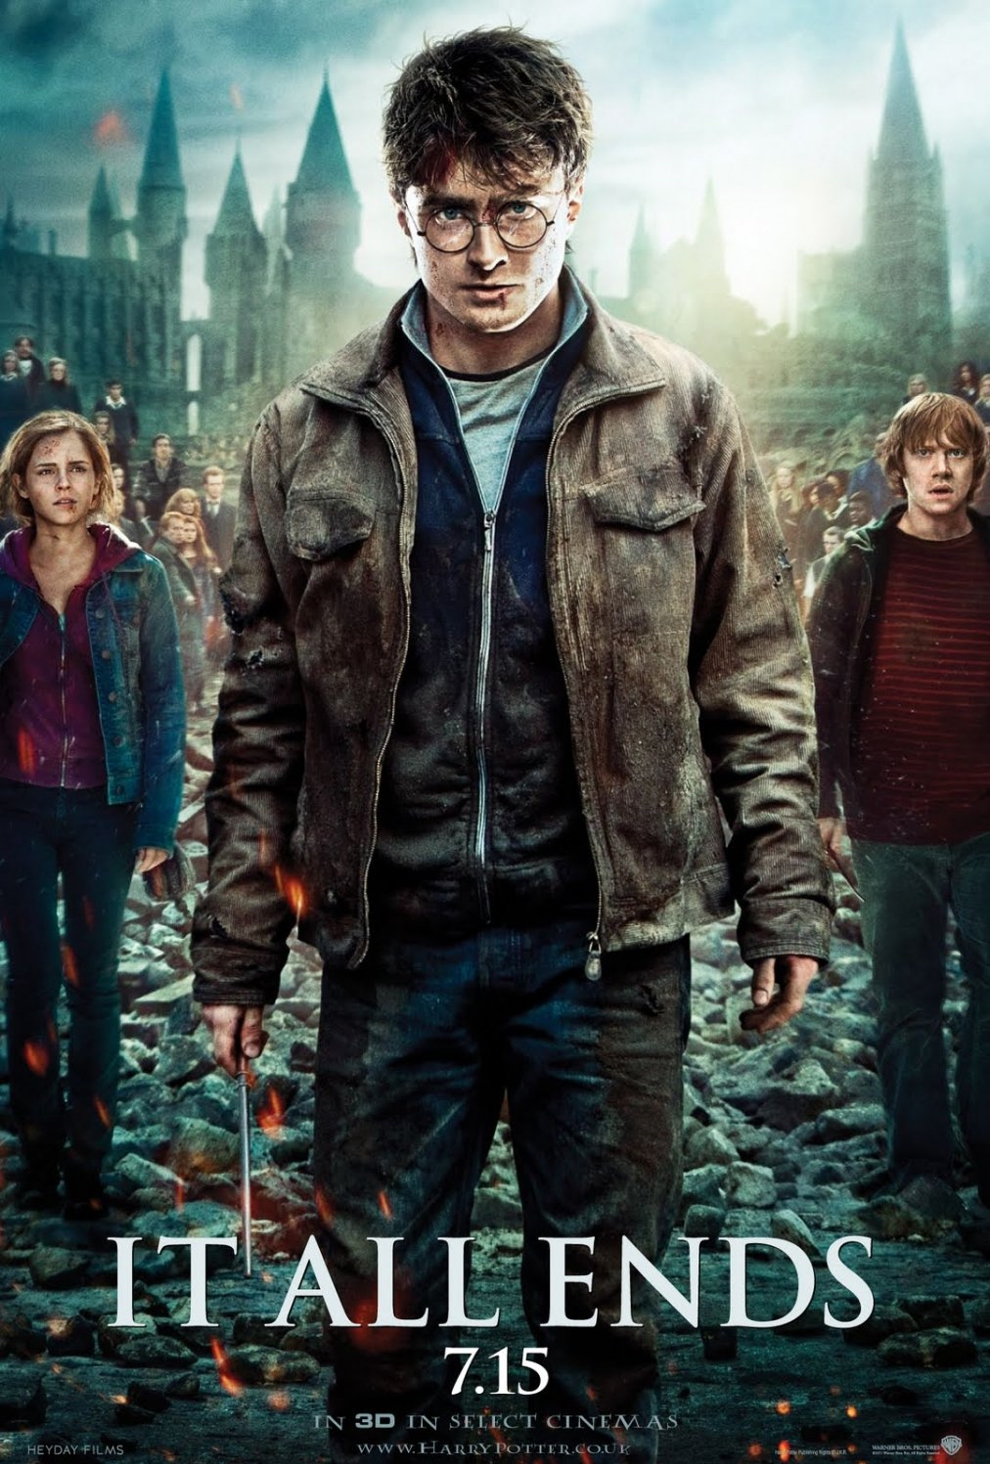 http://3.bp.blogspot.com/-88DyTd6K0pM/Th9UCROJdZI/AAAAAAAAHSU/ObN_y3jO2d8/s1600/new-poster-harry-potter-and-the-deathly-hallows-part-2.jpg